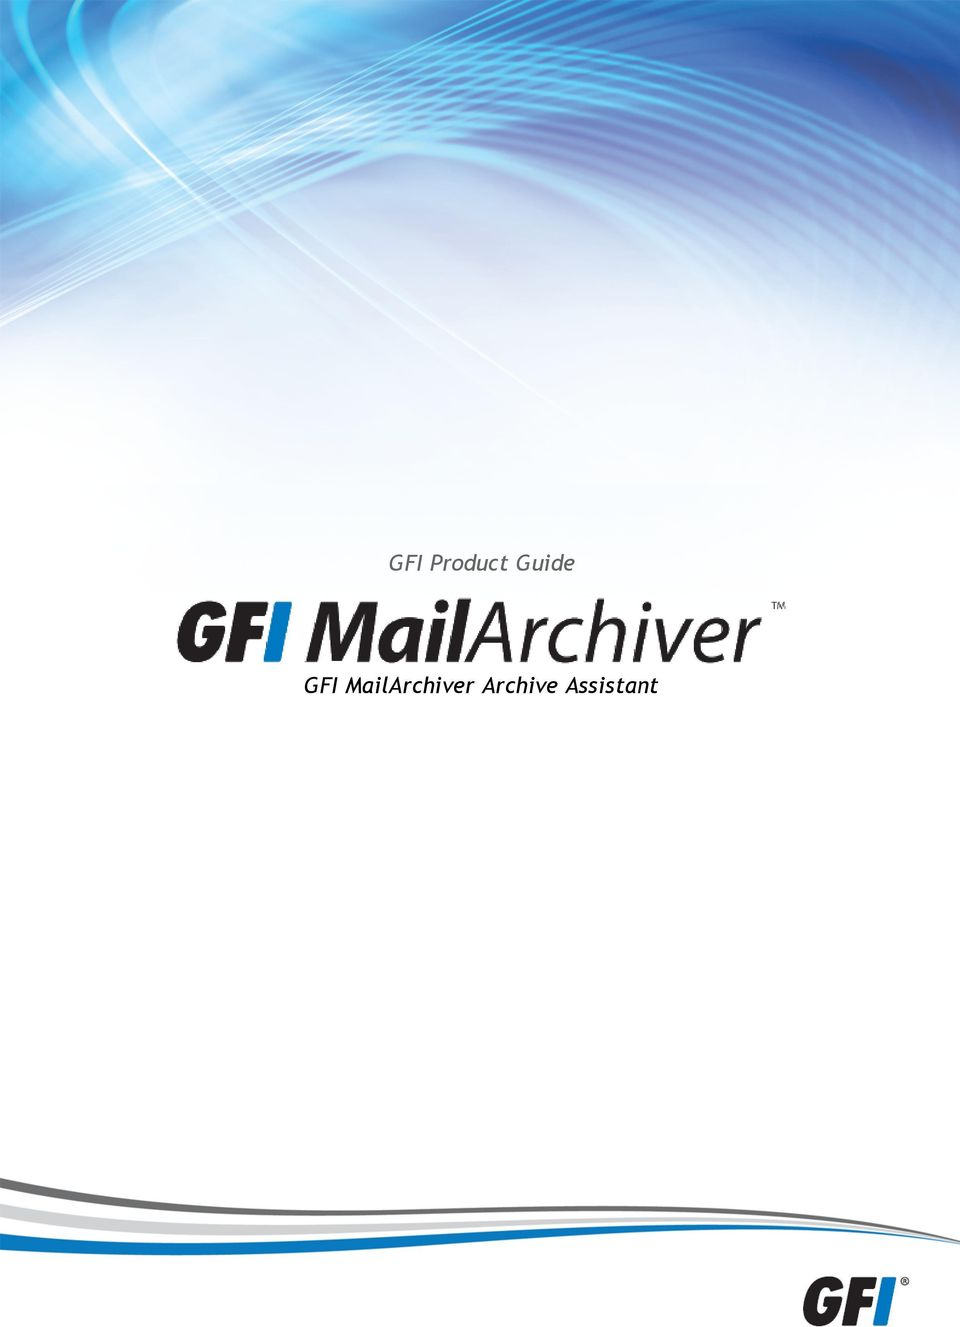 MailArchiver